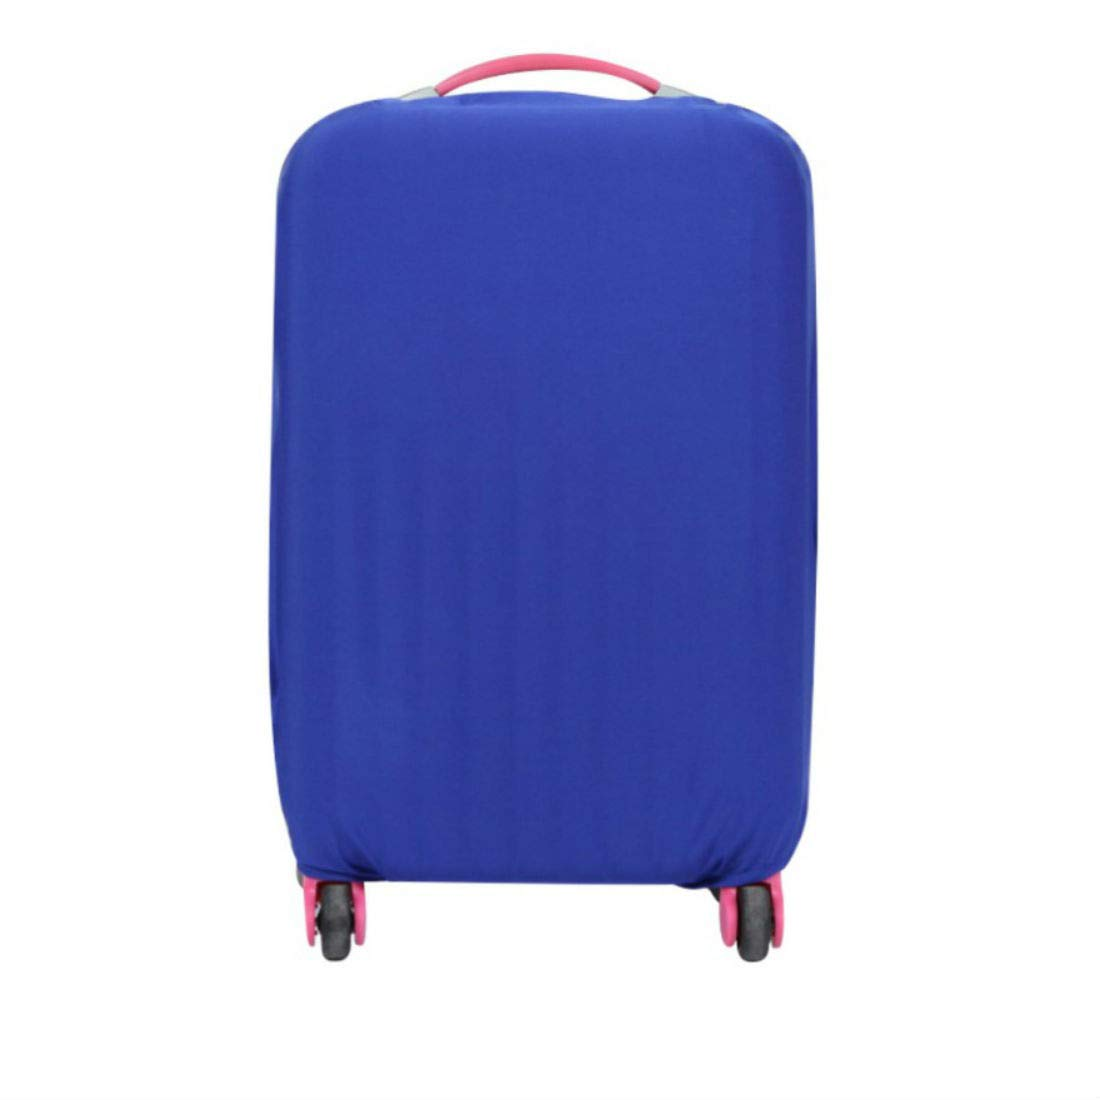 Blue US 18-26 inch Travel Luggage Suitcase Protective Dust-proof Cover Case Protector (LARGE)